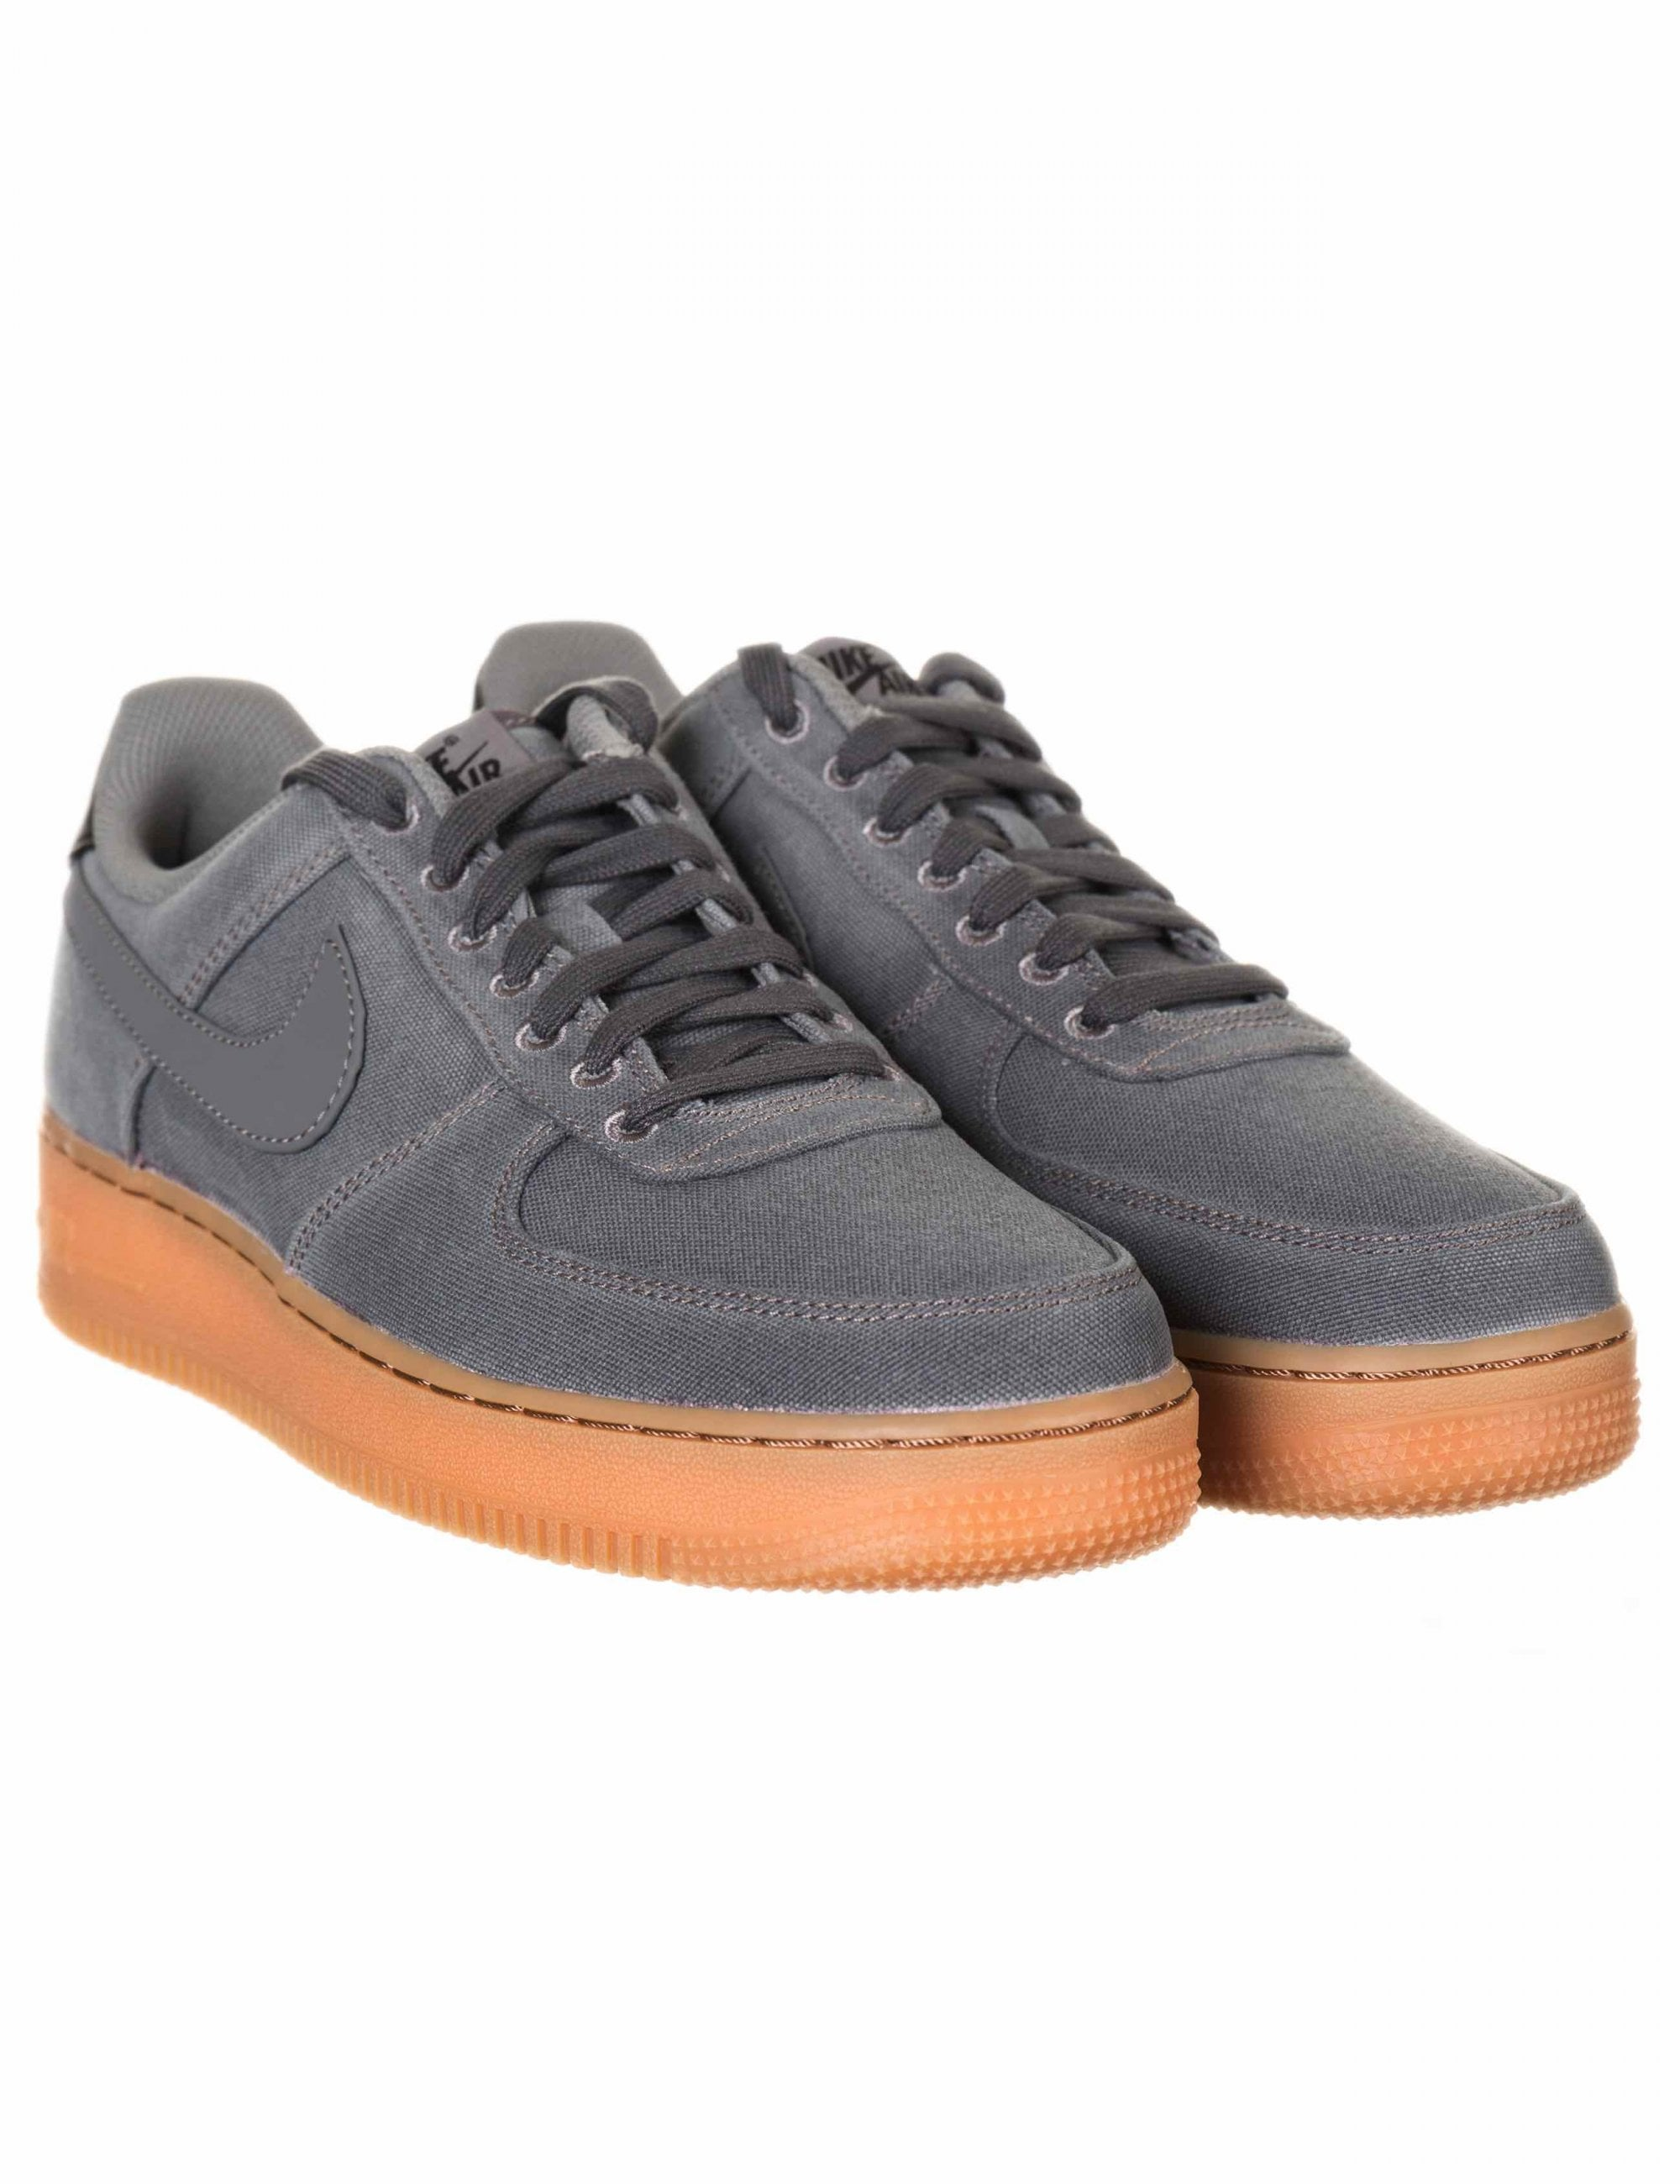 Kappa Mens and womens Nike Air Force 1 07 LV8 Suede low top sneakers 36 45